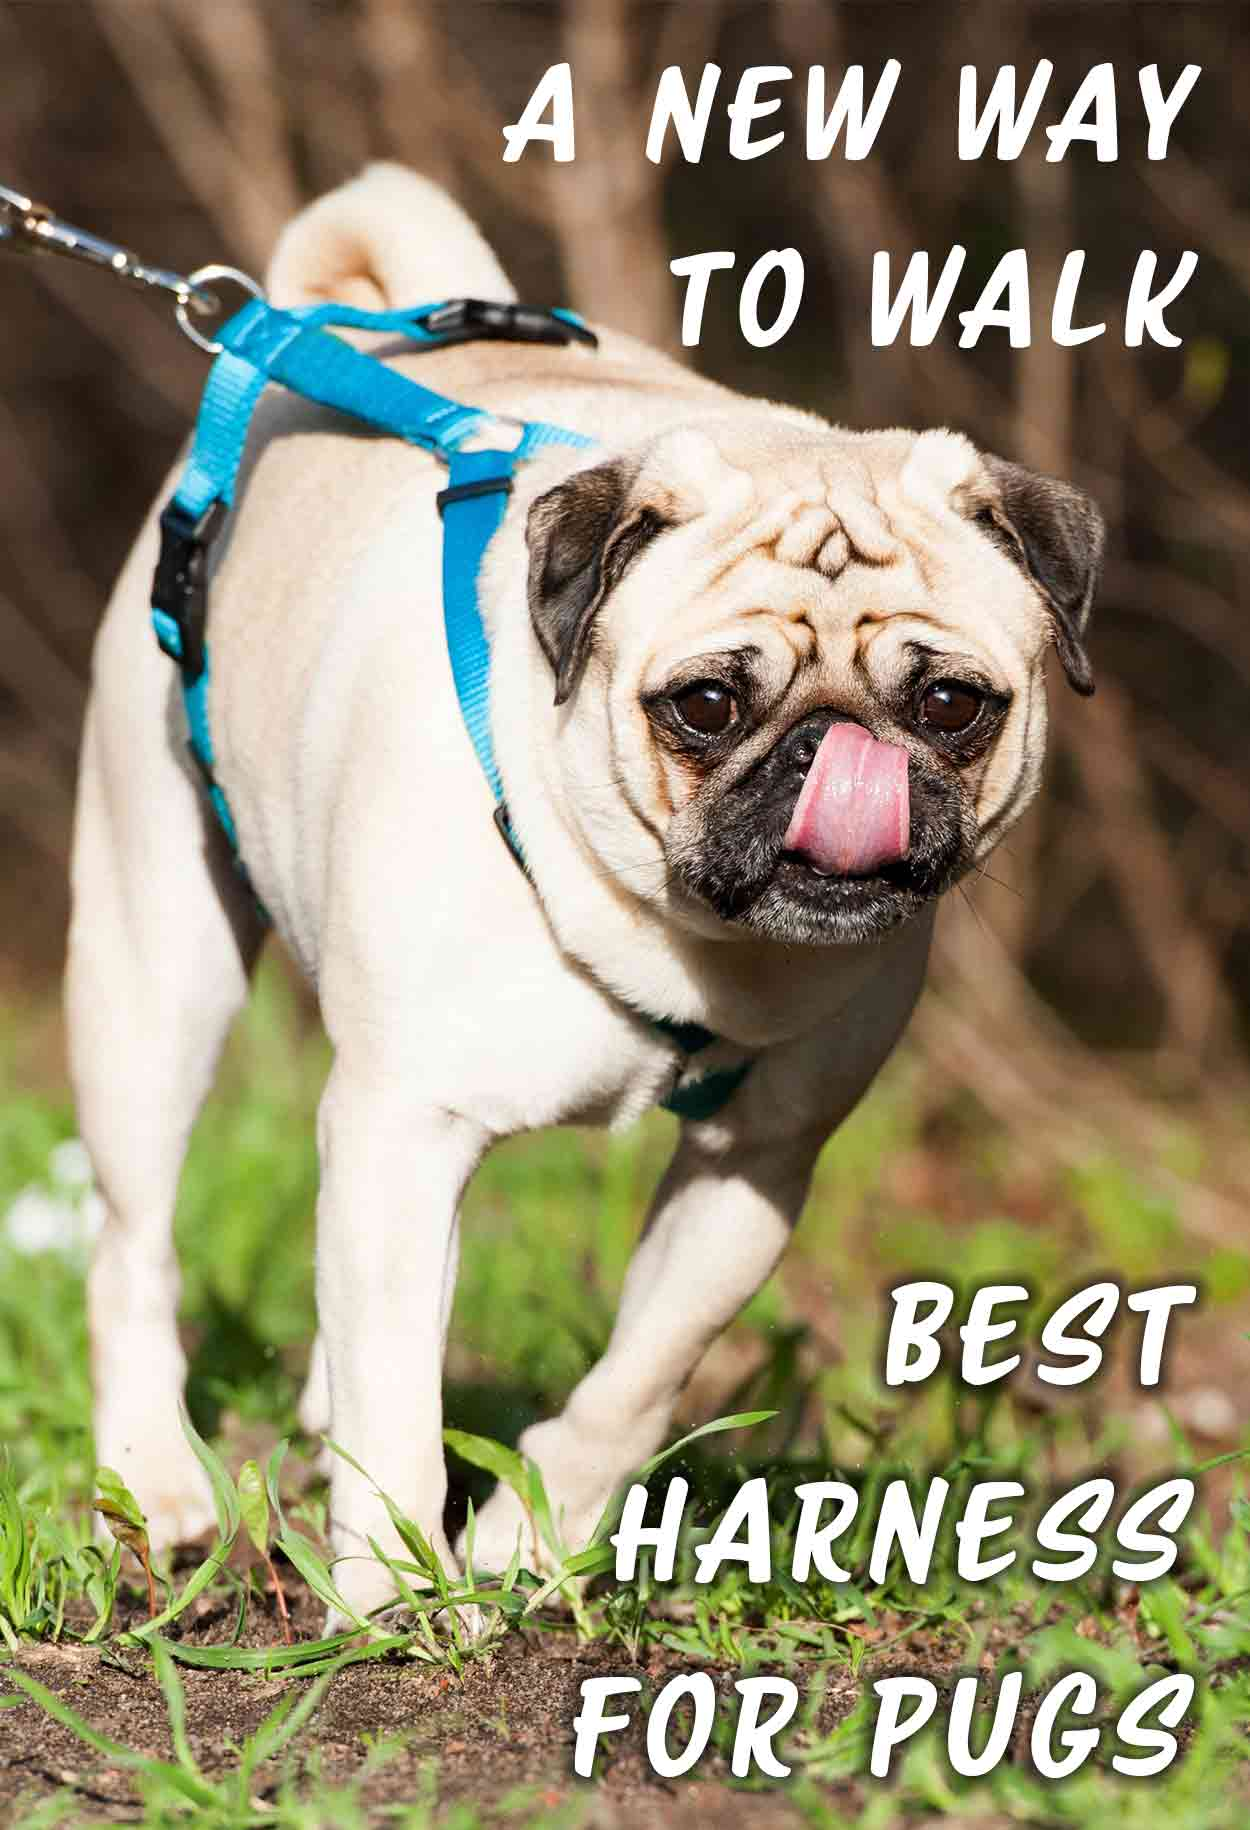 Best harness for pugs, A new way to walk - Dog harness reviews.